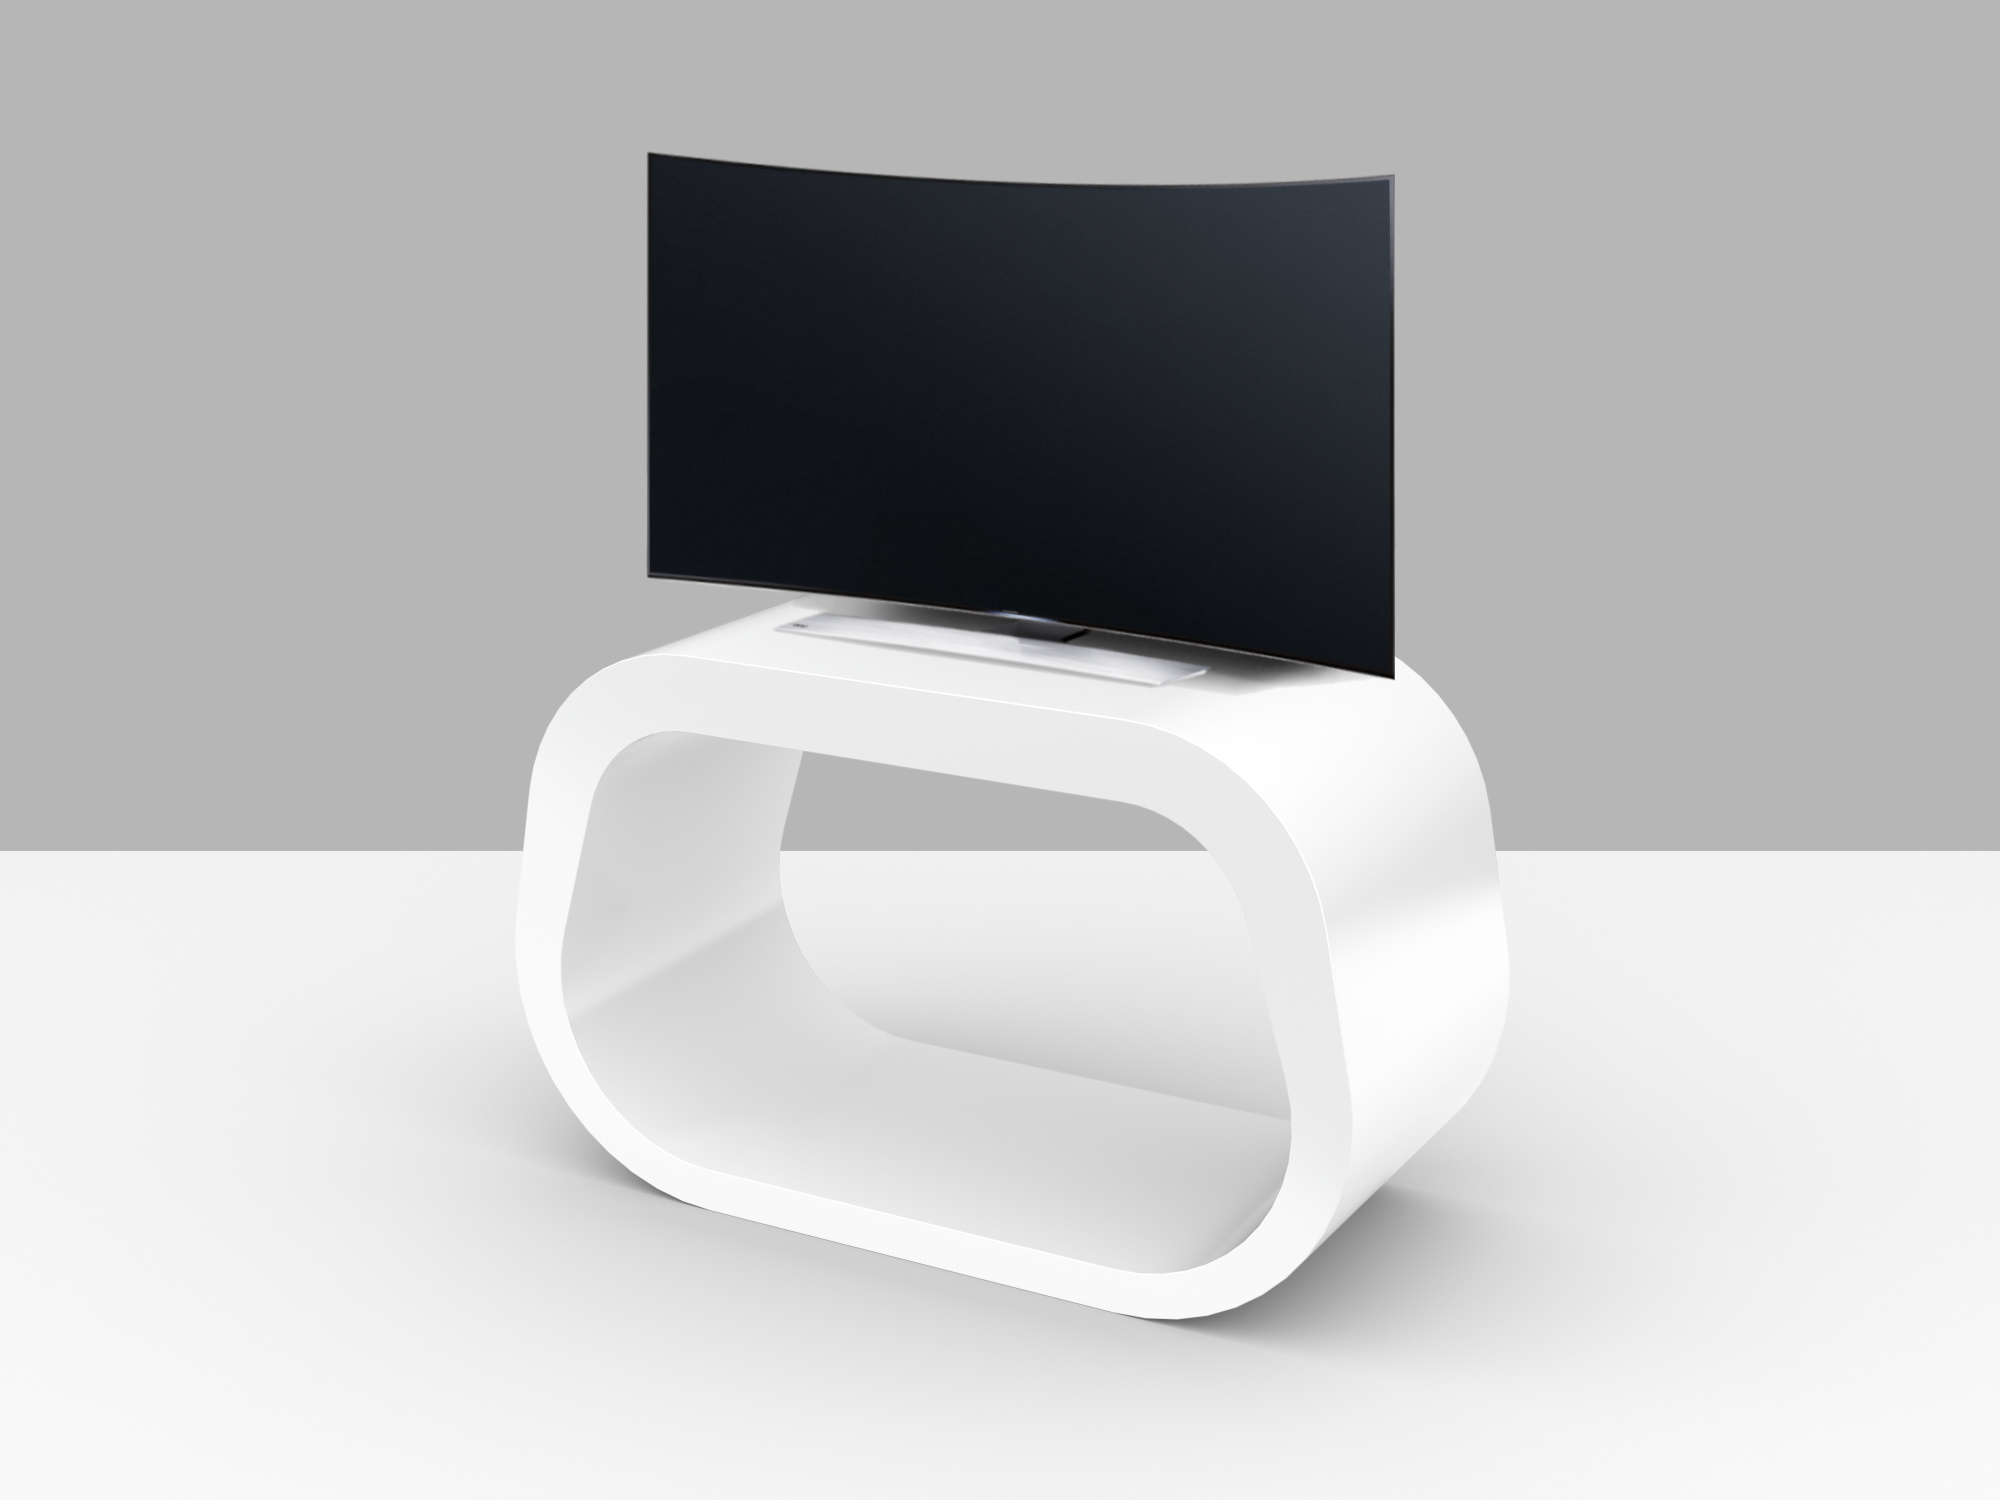 "Most Recently Released Small White Tv Stands Regarding The Squoval Tv Stand ""square Oval"" (View 12 of 20)"